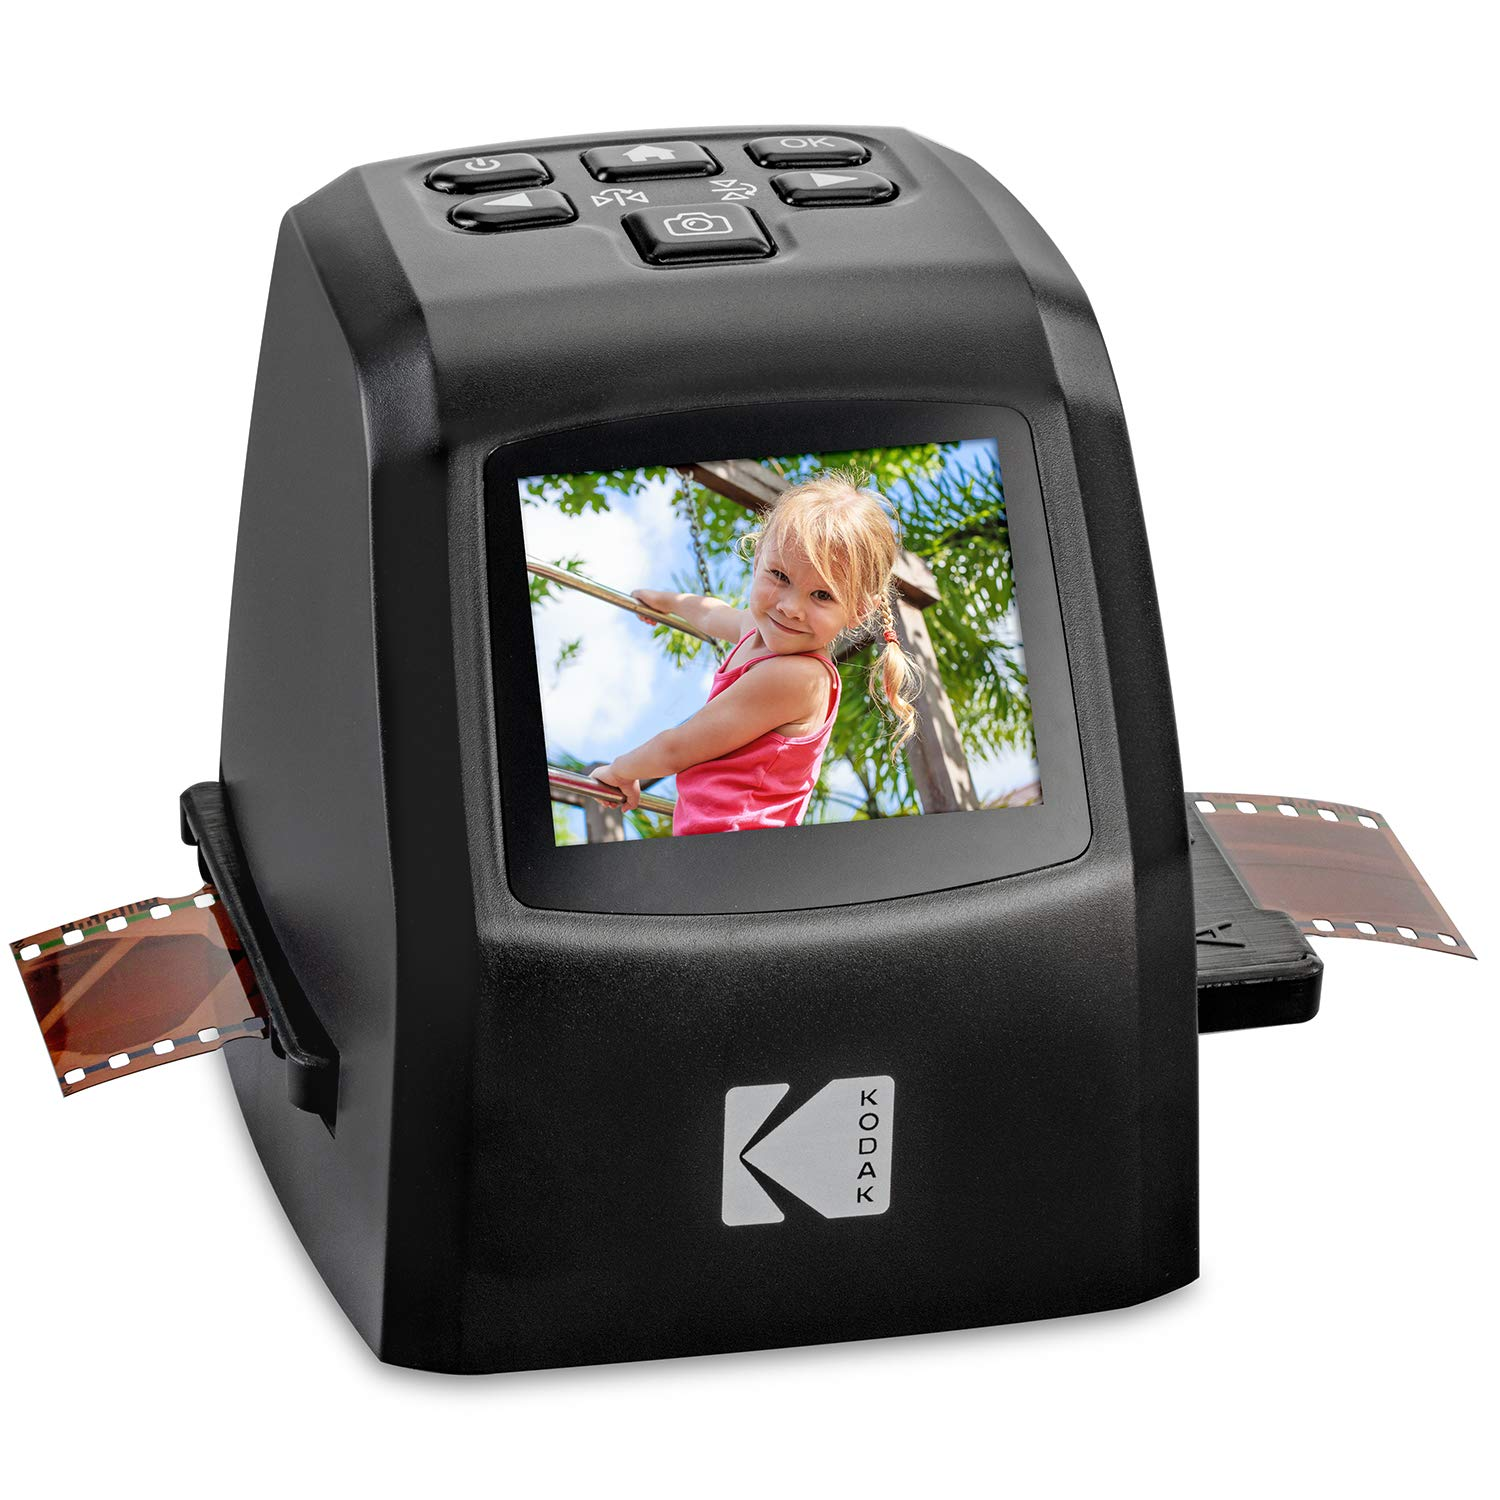 KODAK Mini Digital Film & Slide Scanner - Converts 35mm, 126, 110, Super 8 & 8mm Film Negatives & Slides to 22 Megapixel JPEG Images - Includes - 2.4 LCD Screen - Easy Load Film Adapters by Kodak (Image #1)